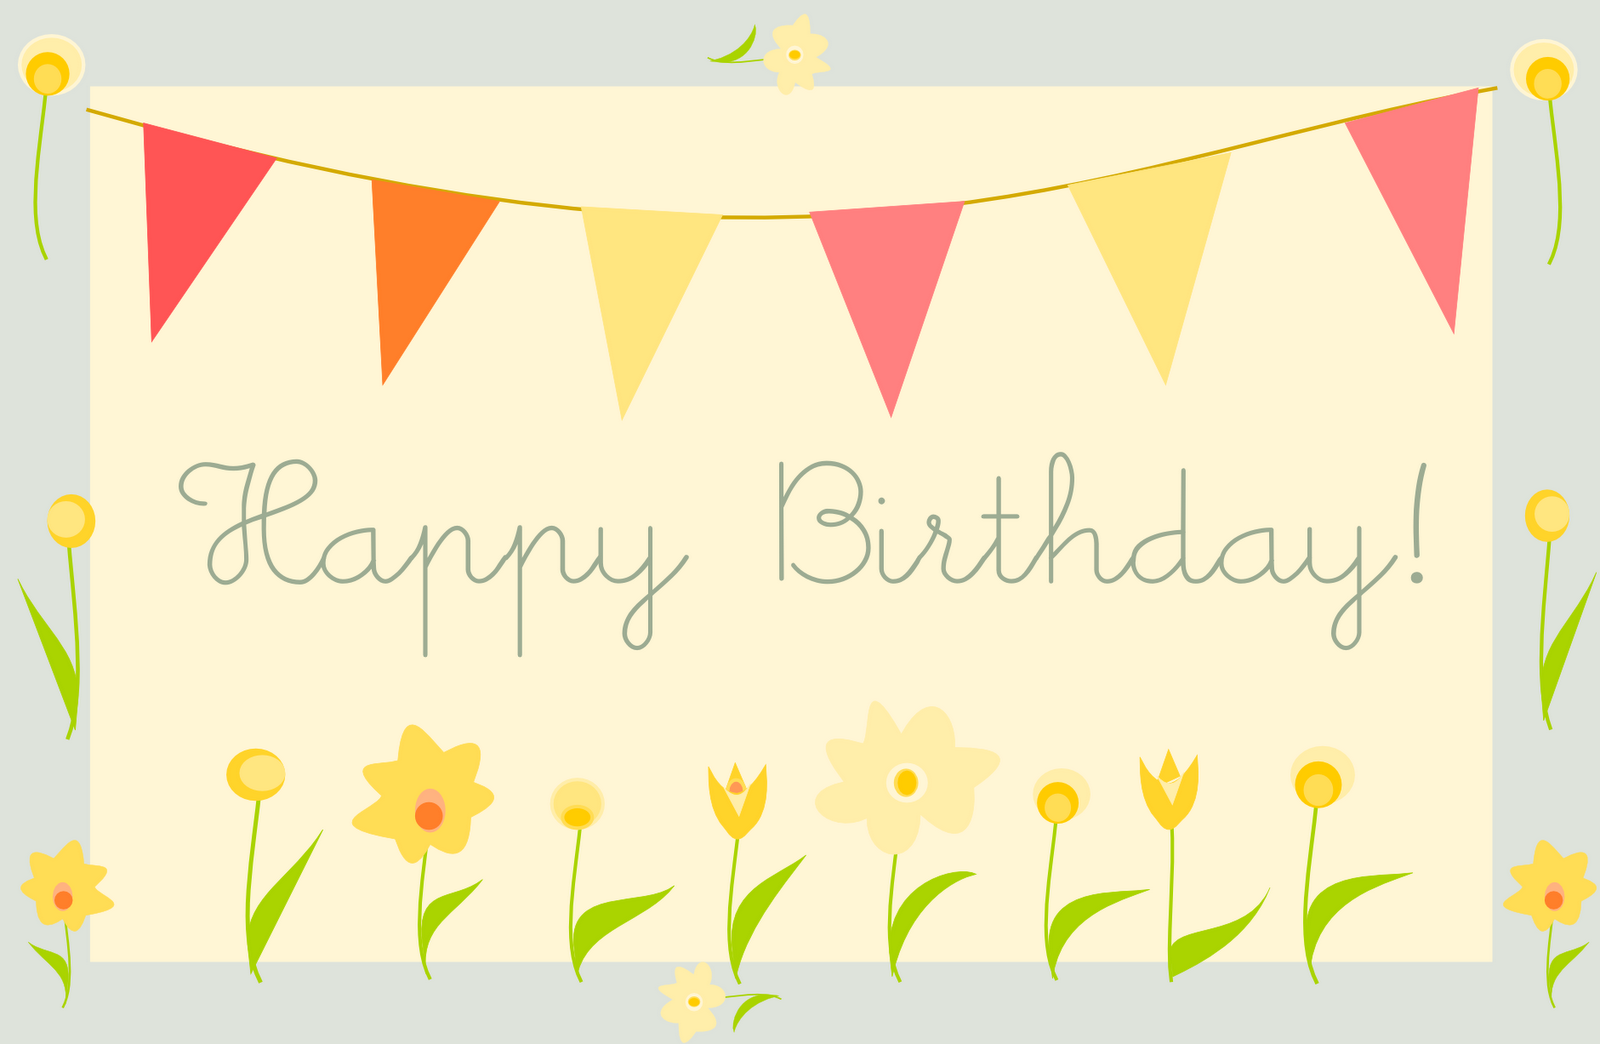 Happy birthday happy birthday happy birthday wishes happy birthday happy birthday happy birthday happy birthday wishes happy birthday quotes happy birthday images happy birthday pictures birthday cards to printbirthday kristyandbryce Gallery